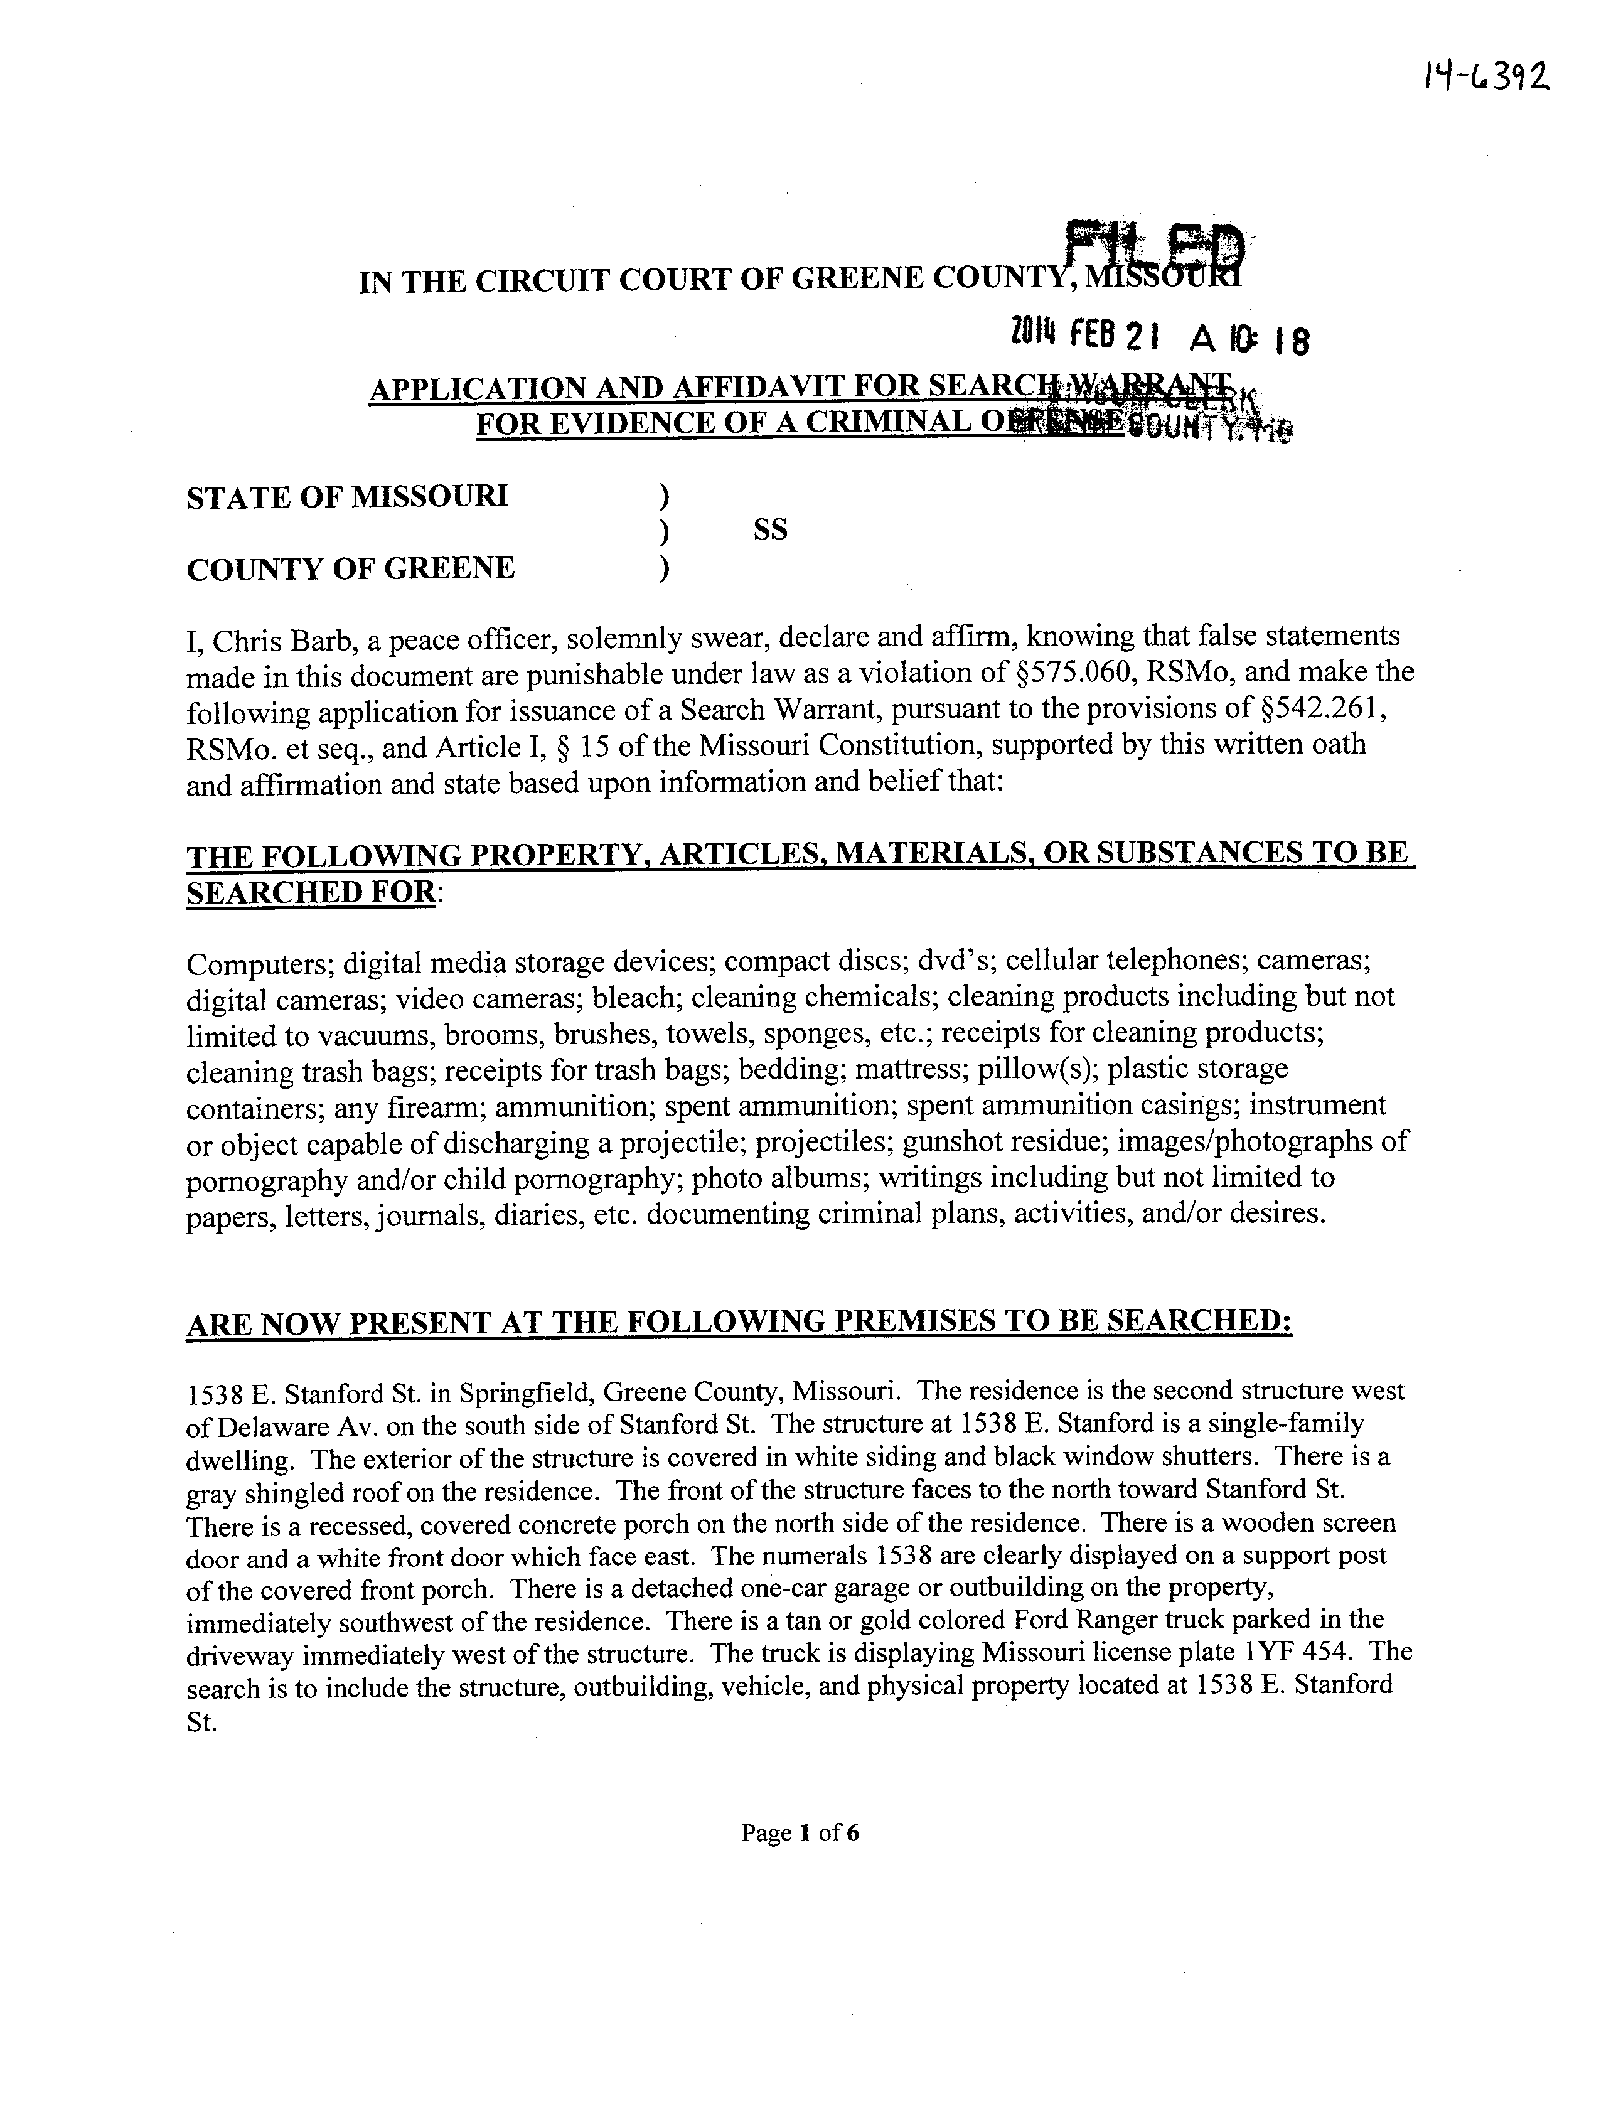 Copy of Search Warrant Return08.png